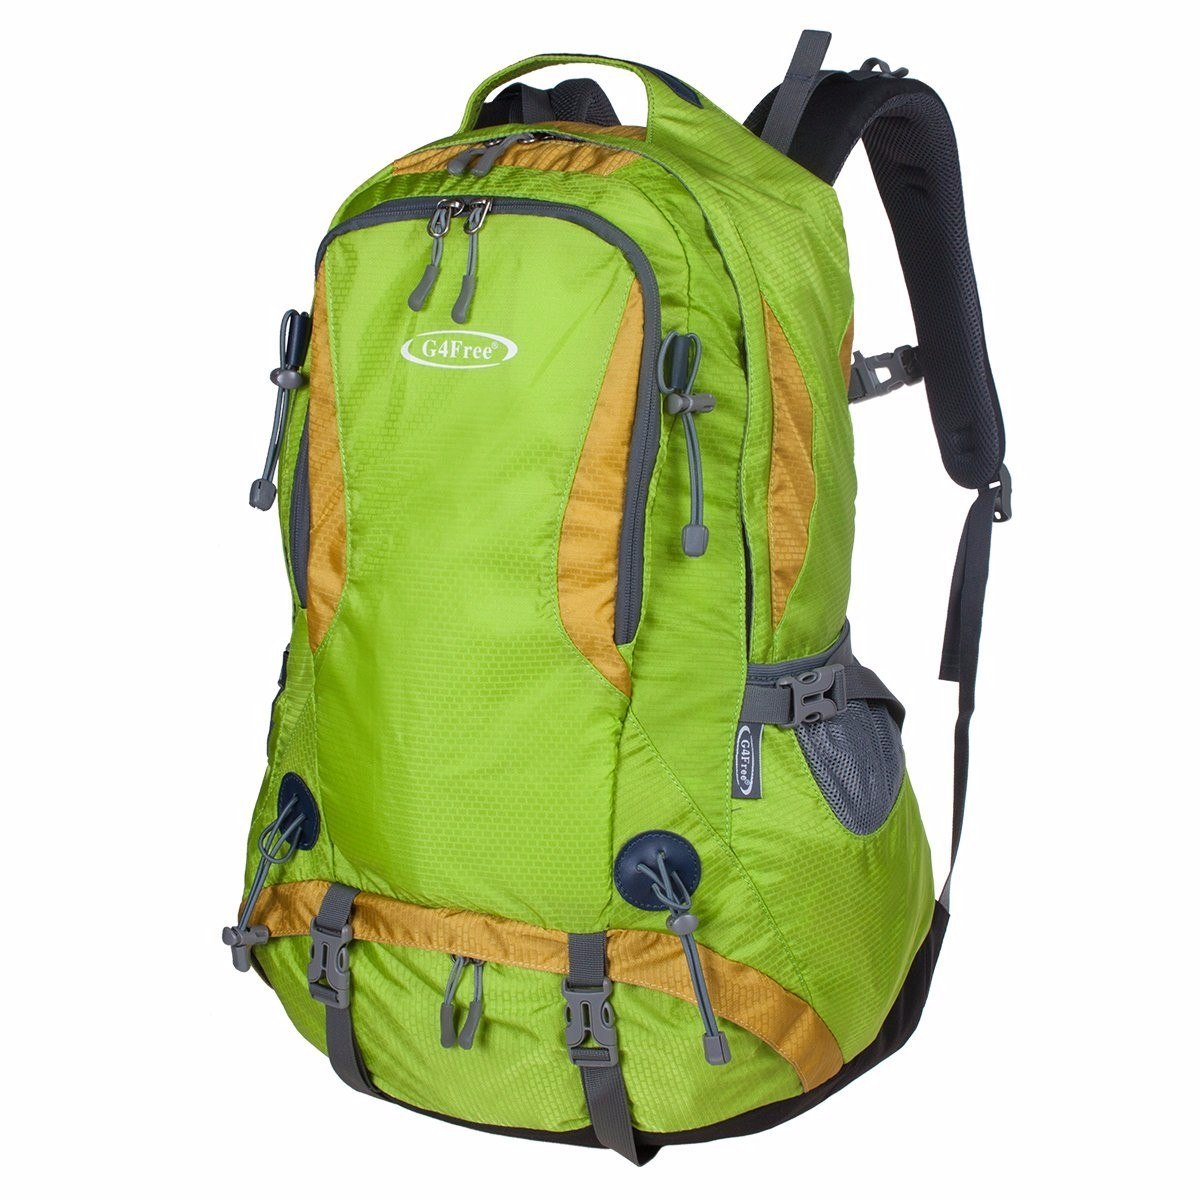 cadb2a2c6e mochila g4free 50l outdoor backpack camping climbing hiking. Cargando zoom.